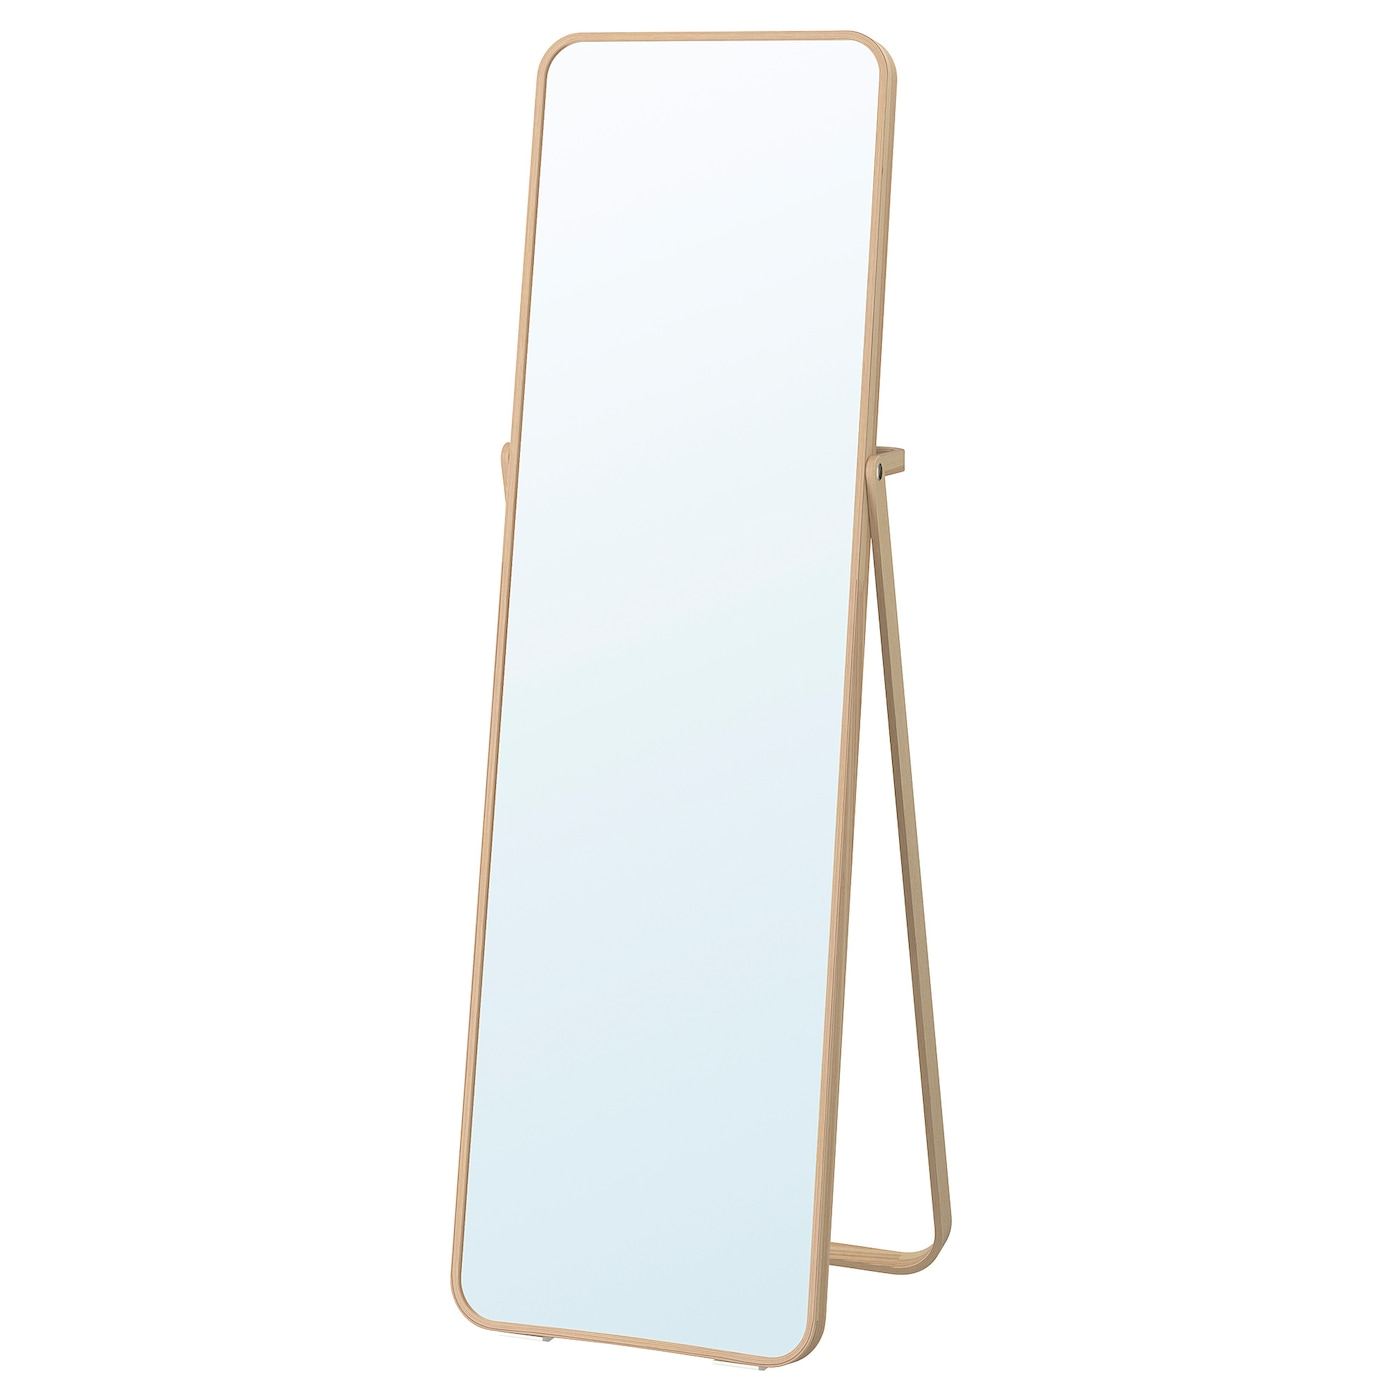 IKEA IKORNNES standing mirror Provided with safety film - reduces damage if glass is broken.